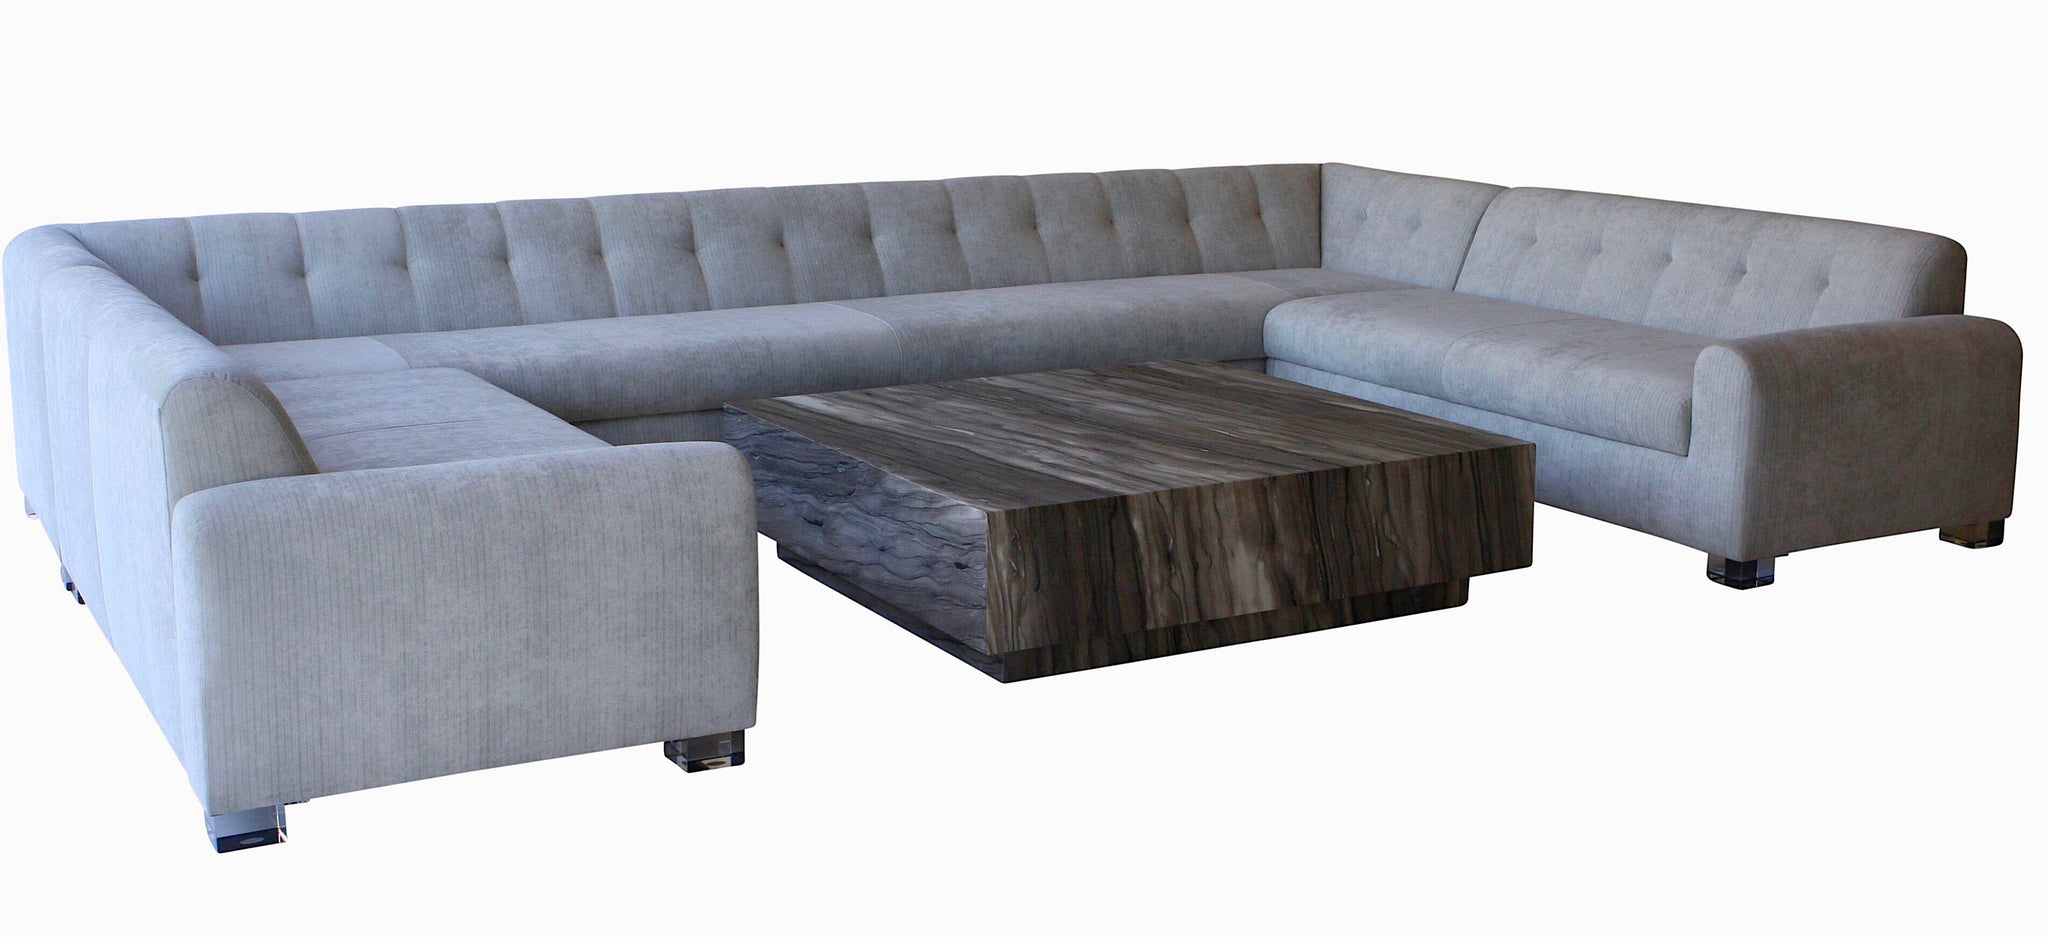 Outdoor Large U Shaped Sectional with Lucite Legs